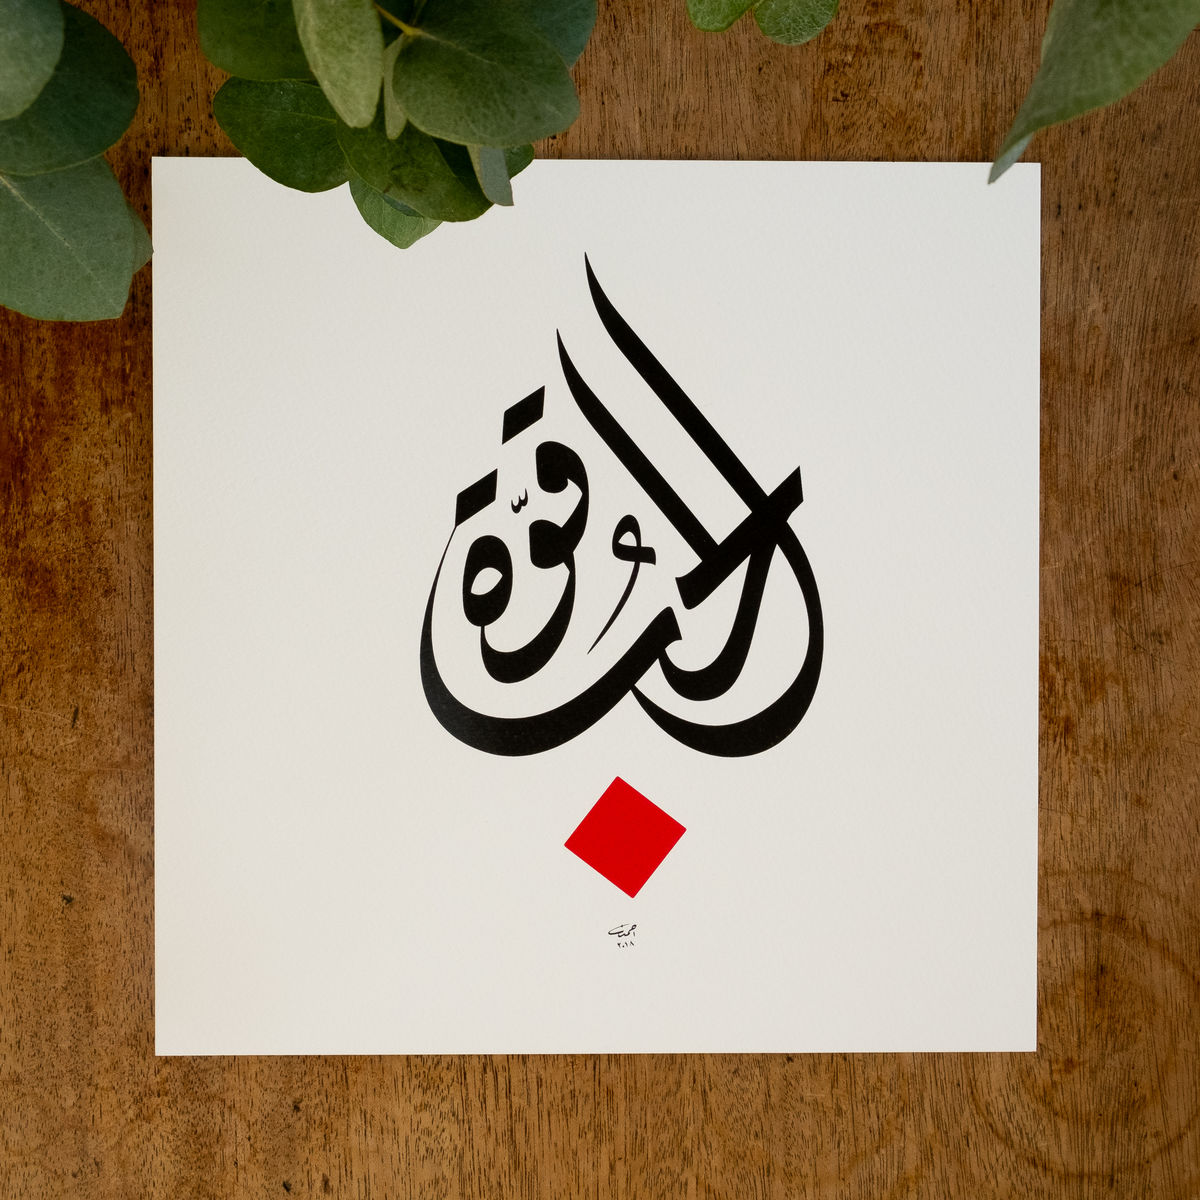 Arabic calligraphy art print - Love is power -  by artist calligrapher Ahmad Zoabi - product images  of